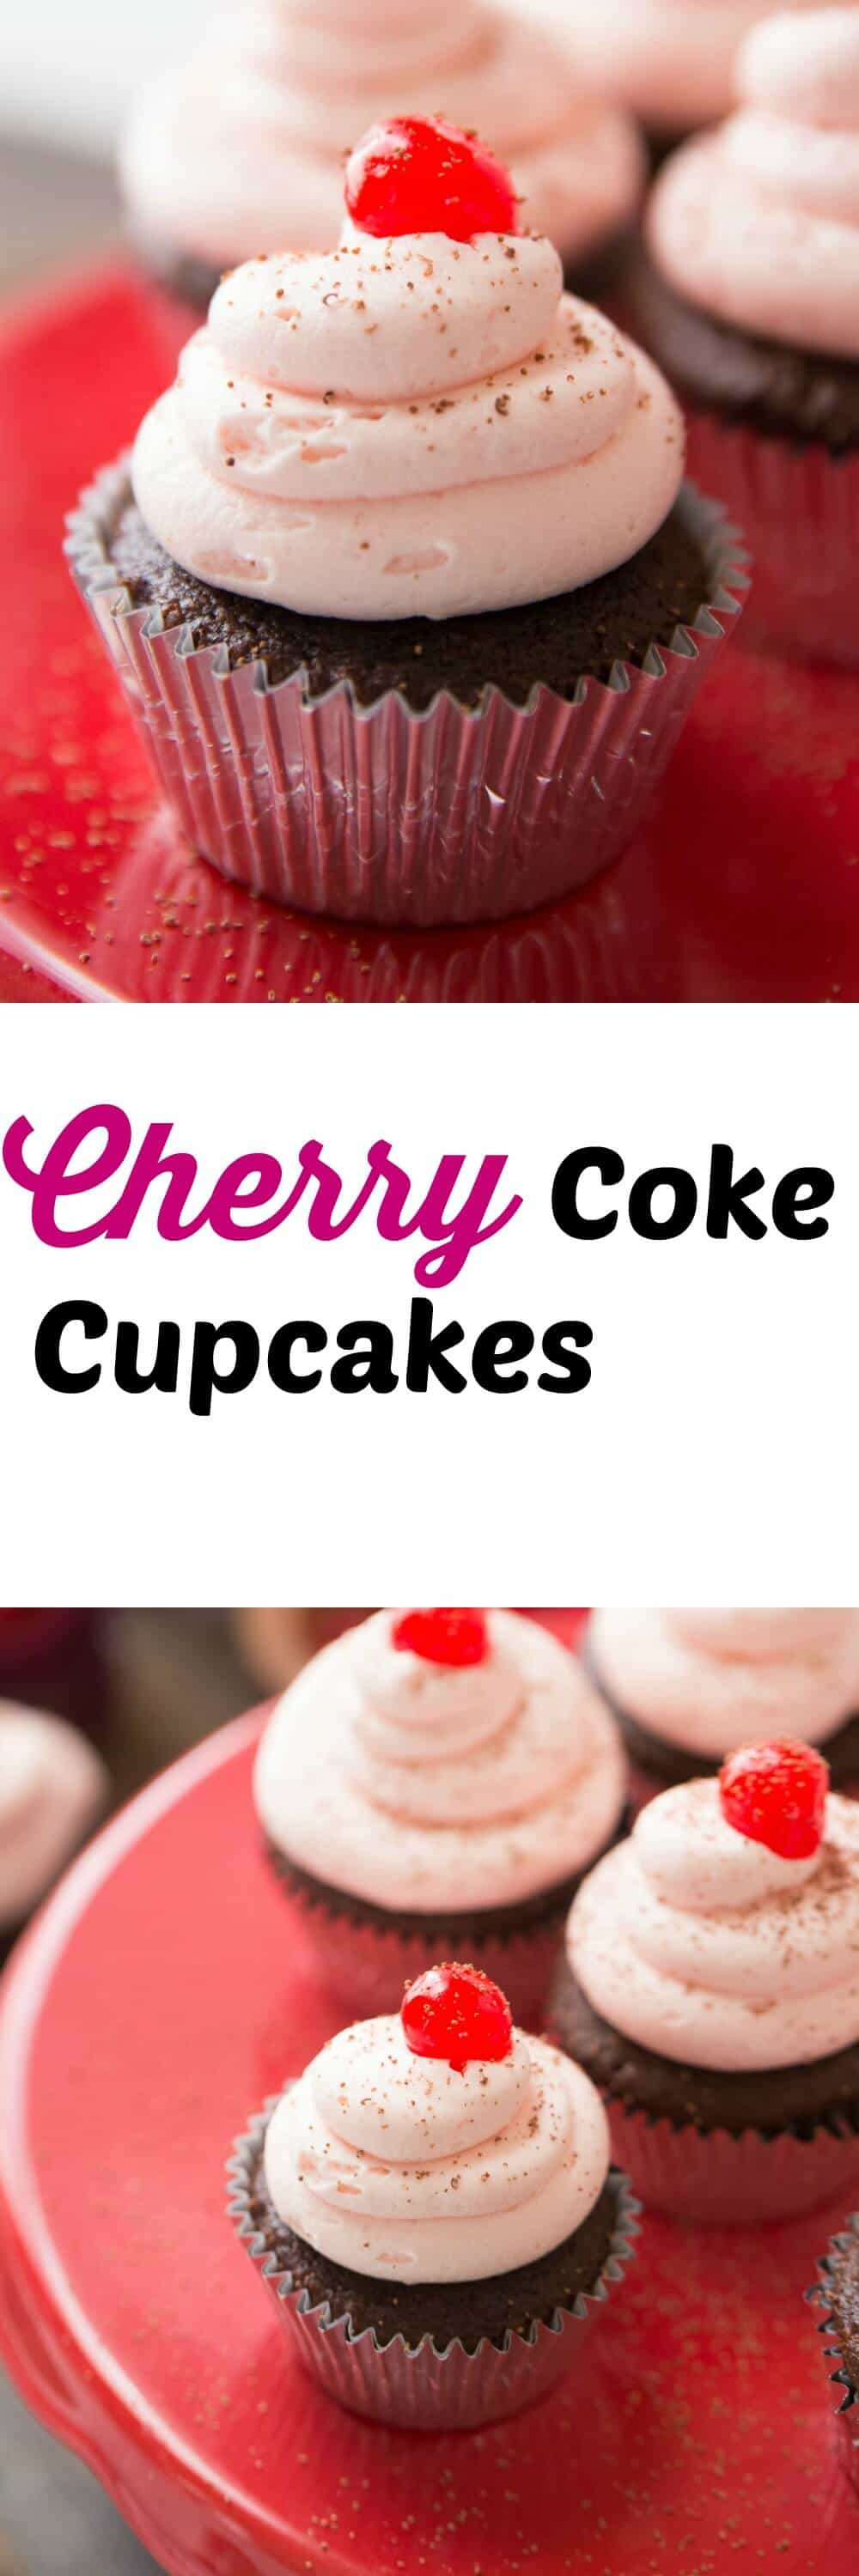 Cherry Coke cupcakes are rich and chocolatey. They are topped with a sweet and creamy cherry buttercream! A luscious glaze is tucked in between! lemonsforlulu.com